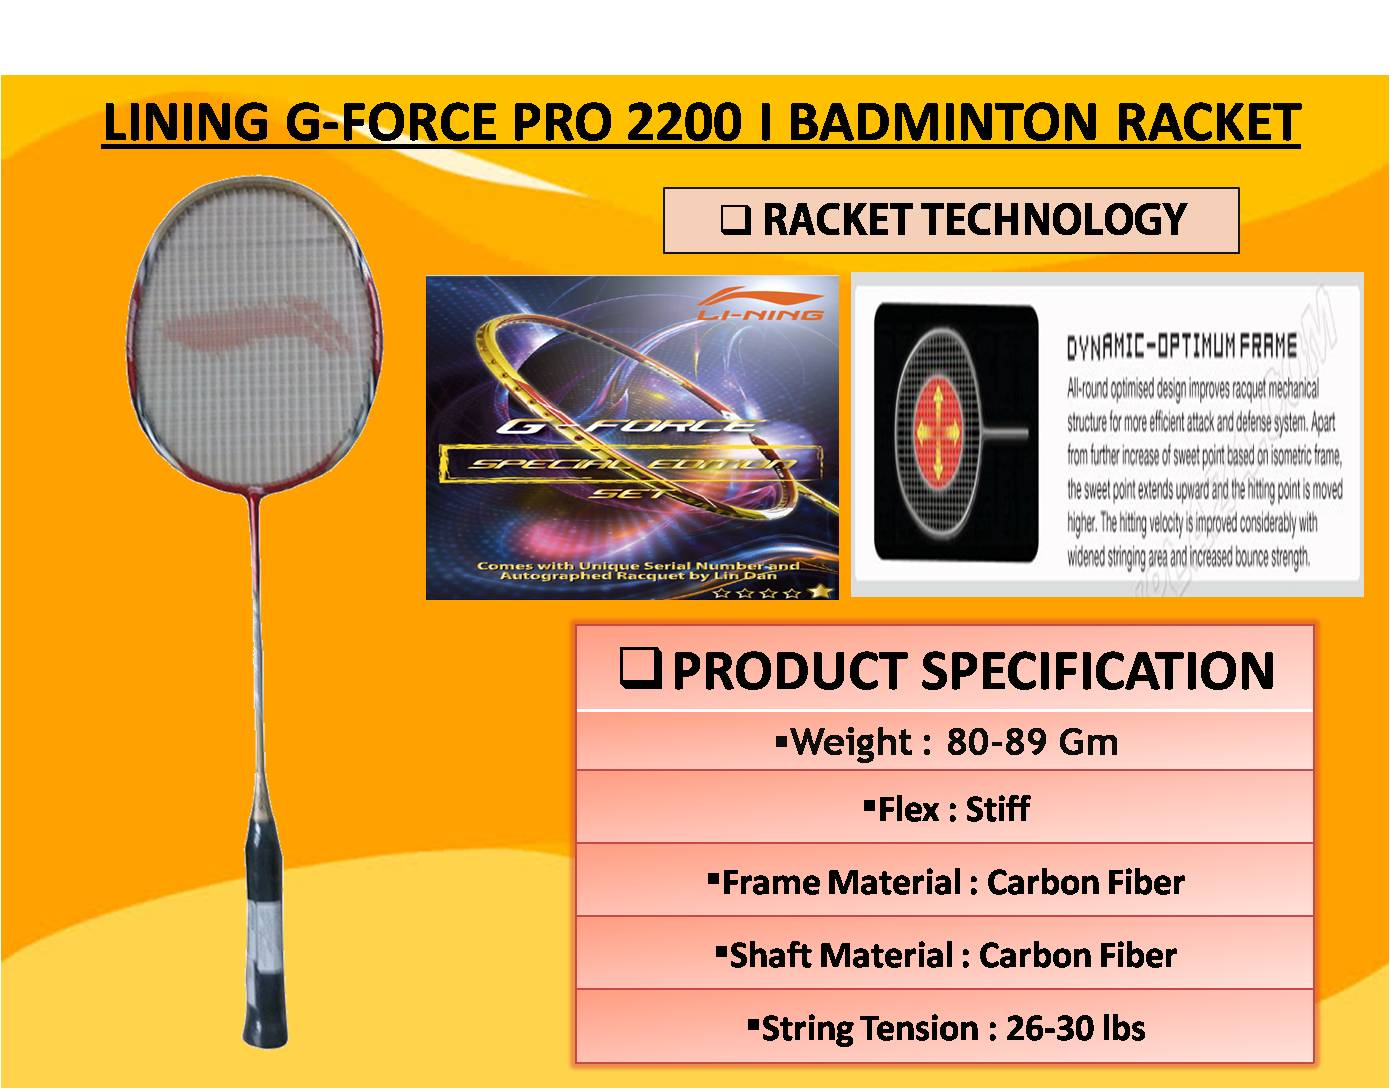 LINING G-FORCE PRO 2200 I BADMINTON RACKET